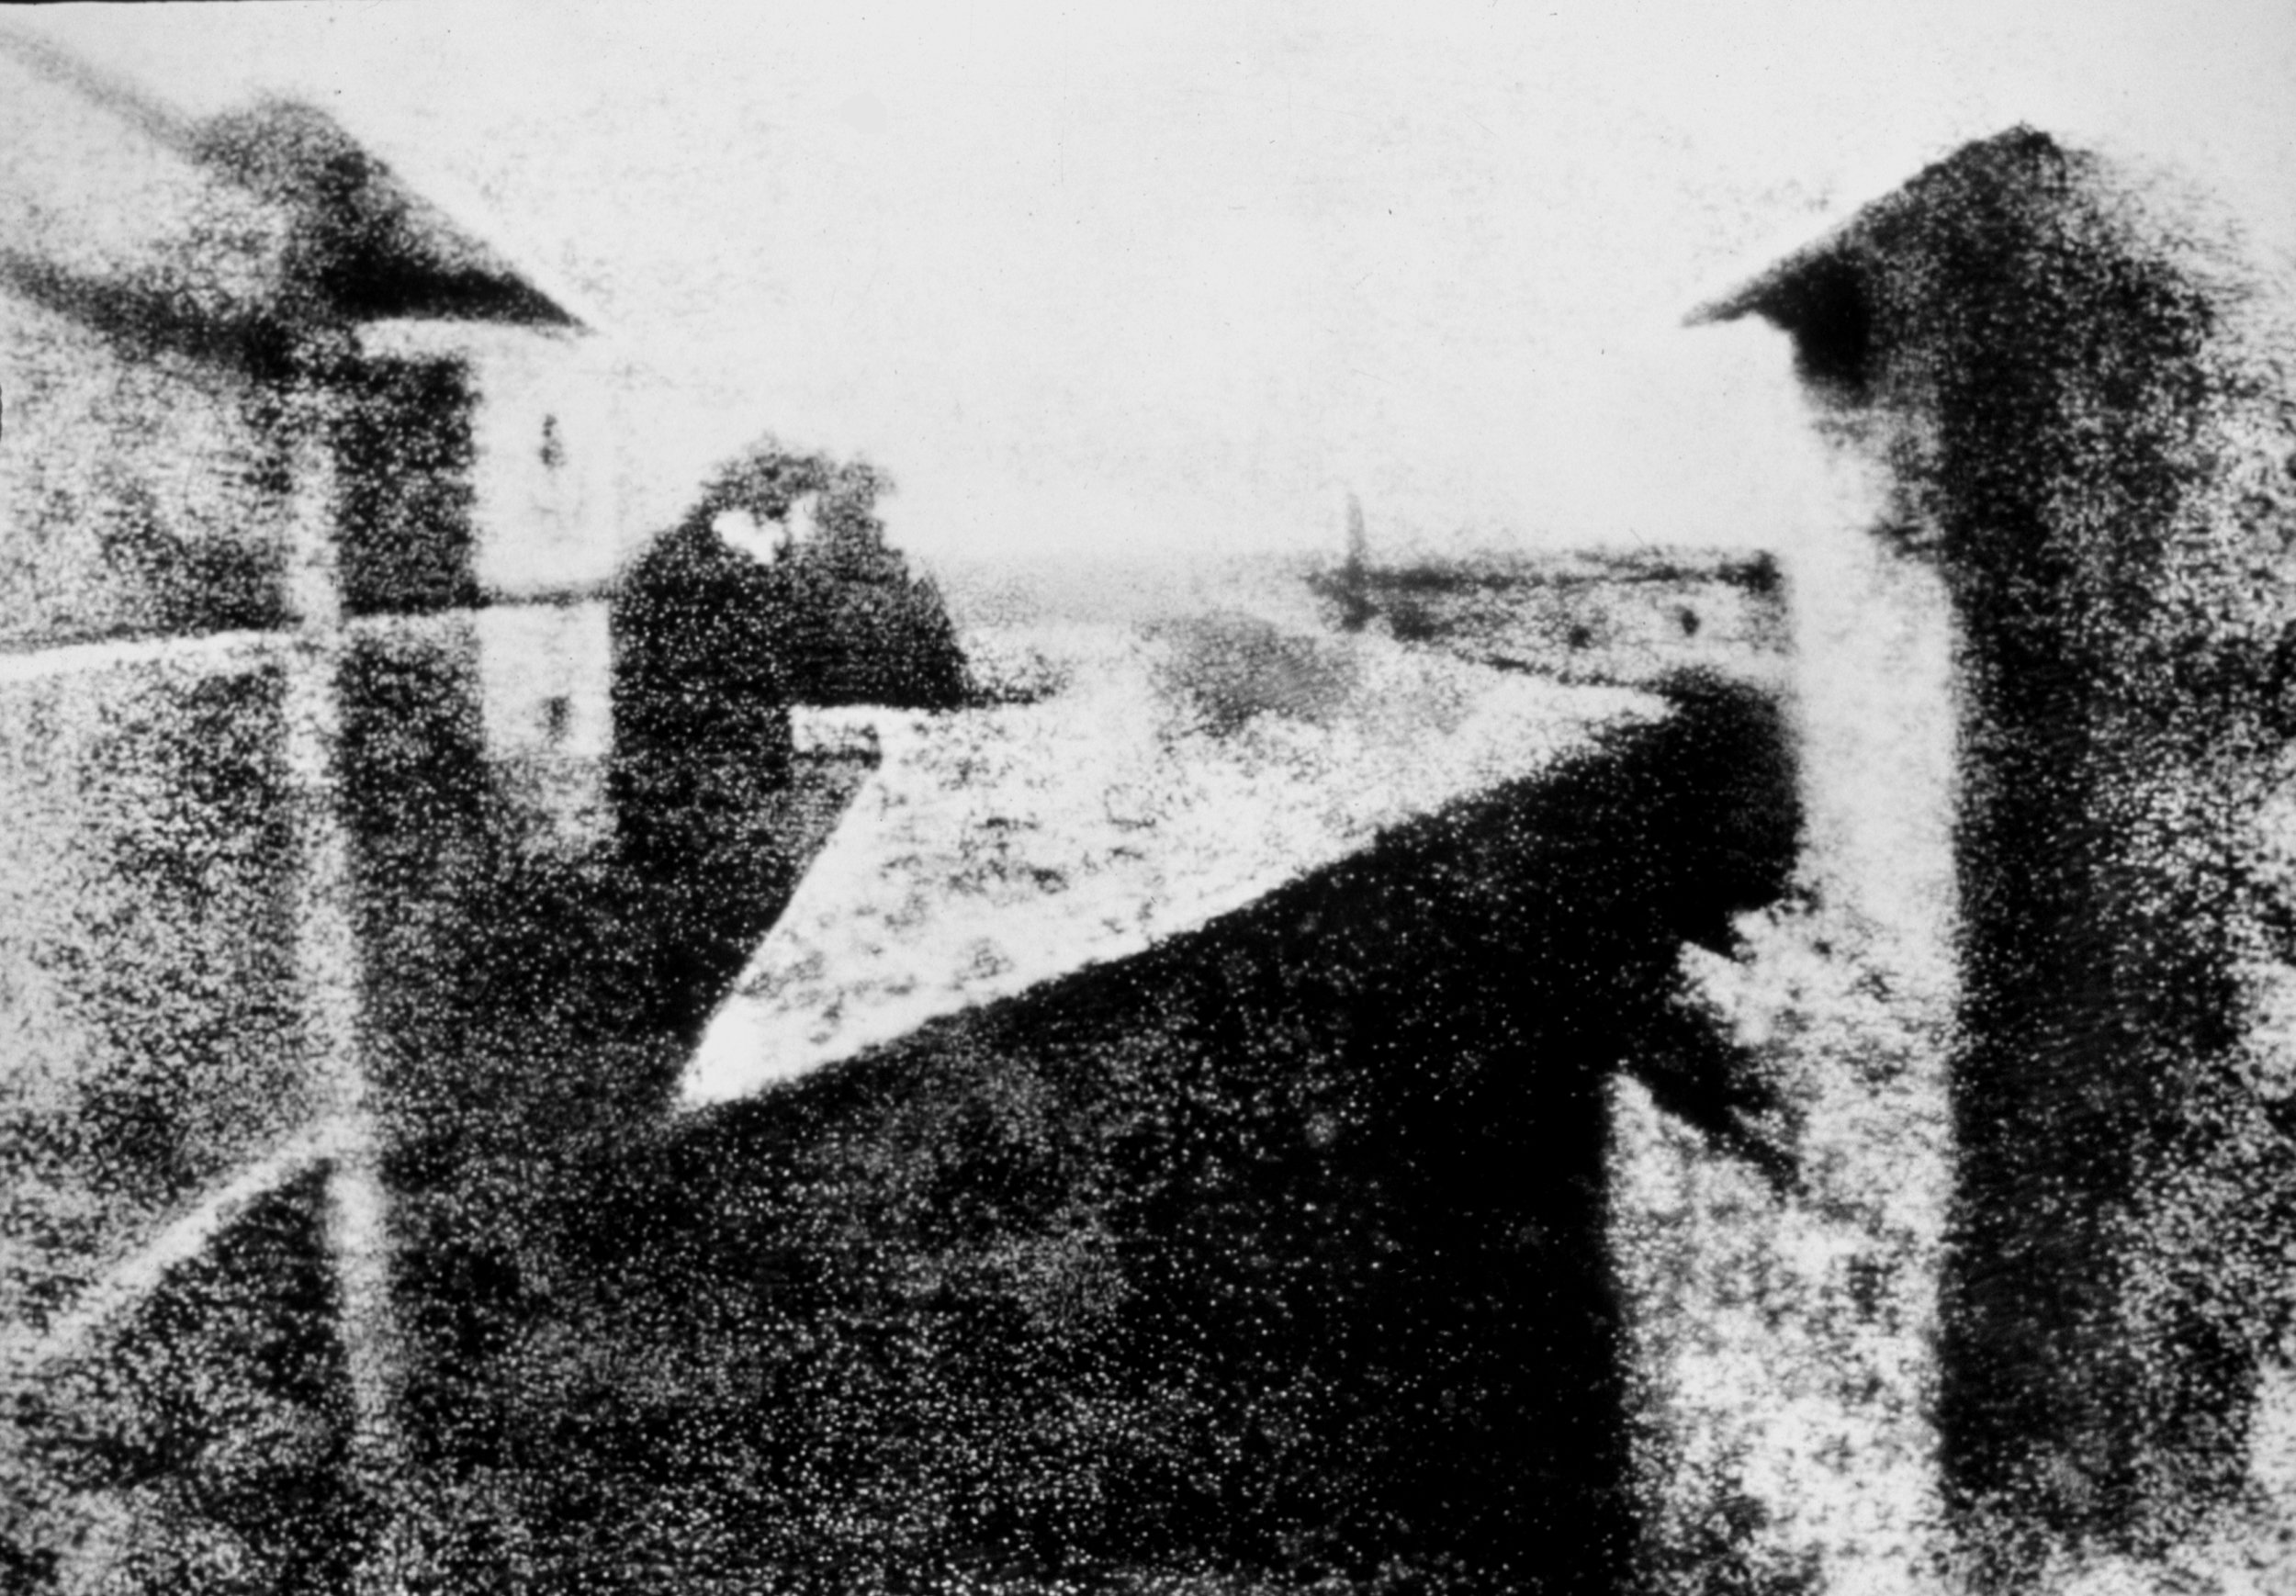 View from the Window at Le Gras (Joseph Nicéphore Nièpce, 1826)